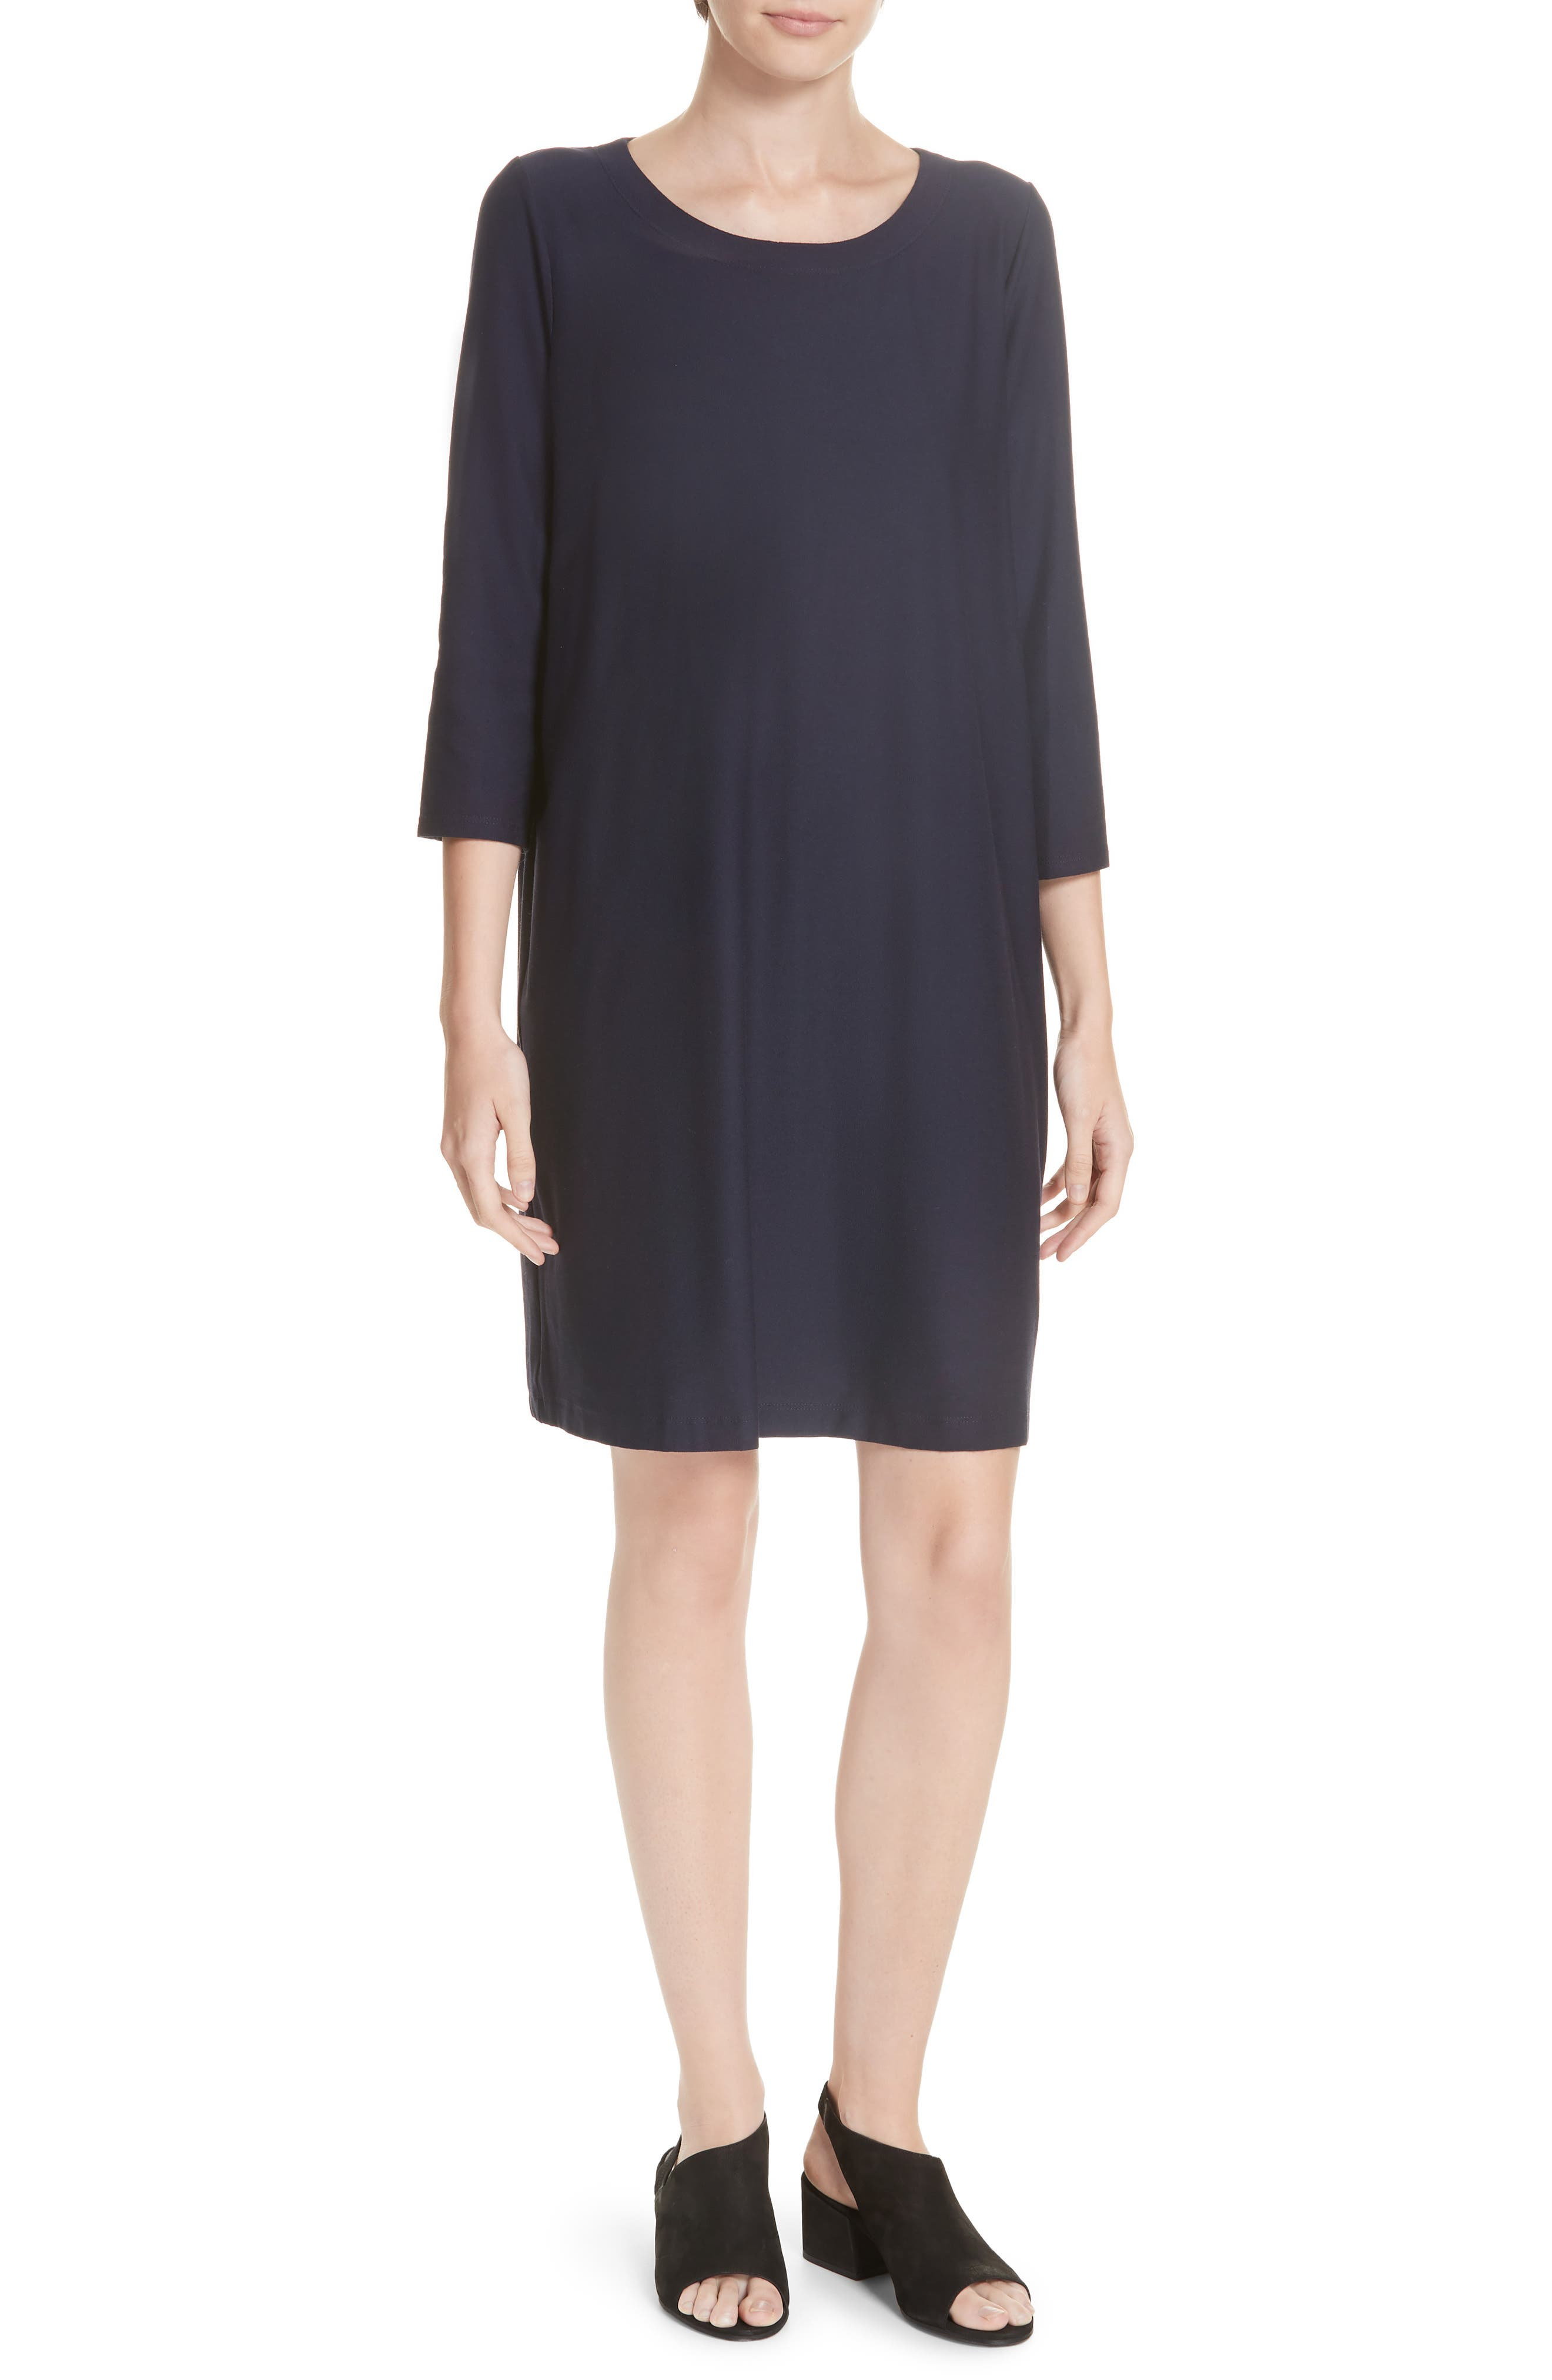 Scoop Neck Knee Length Shift Dress,                         Main,                         color, MIDNIGHT